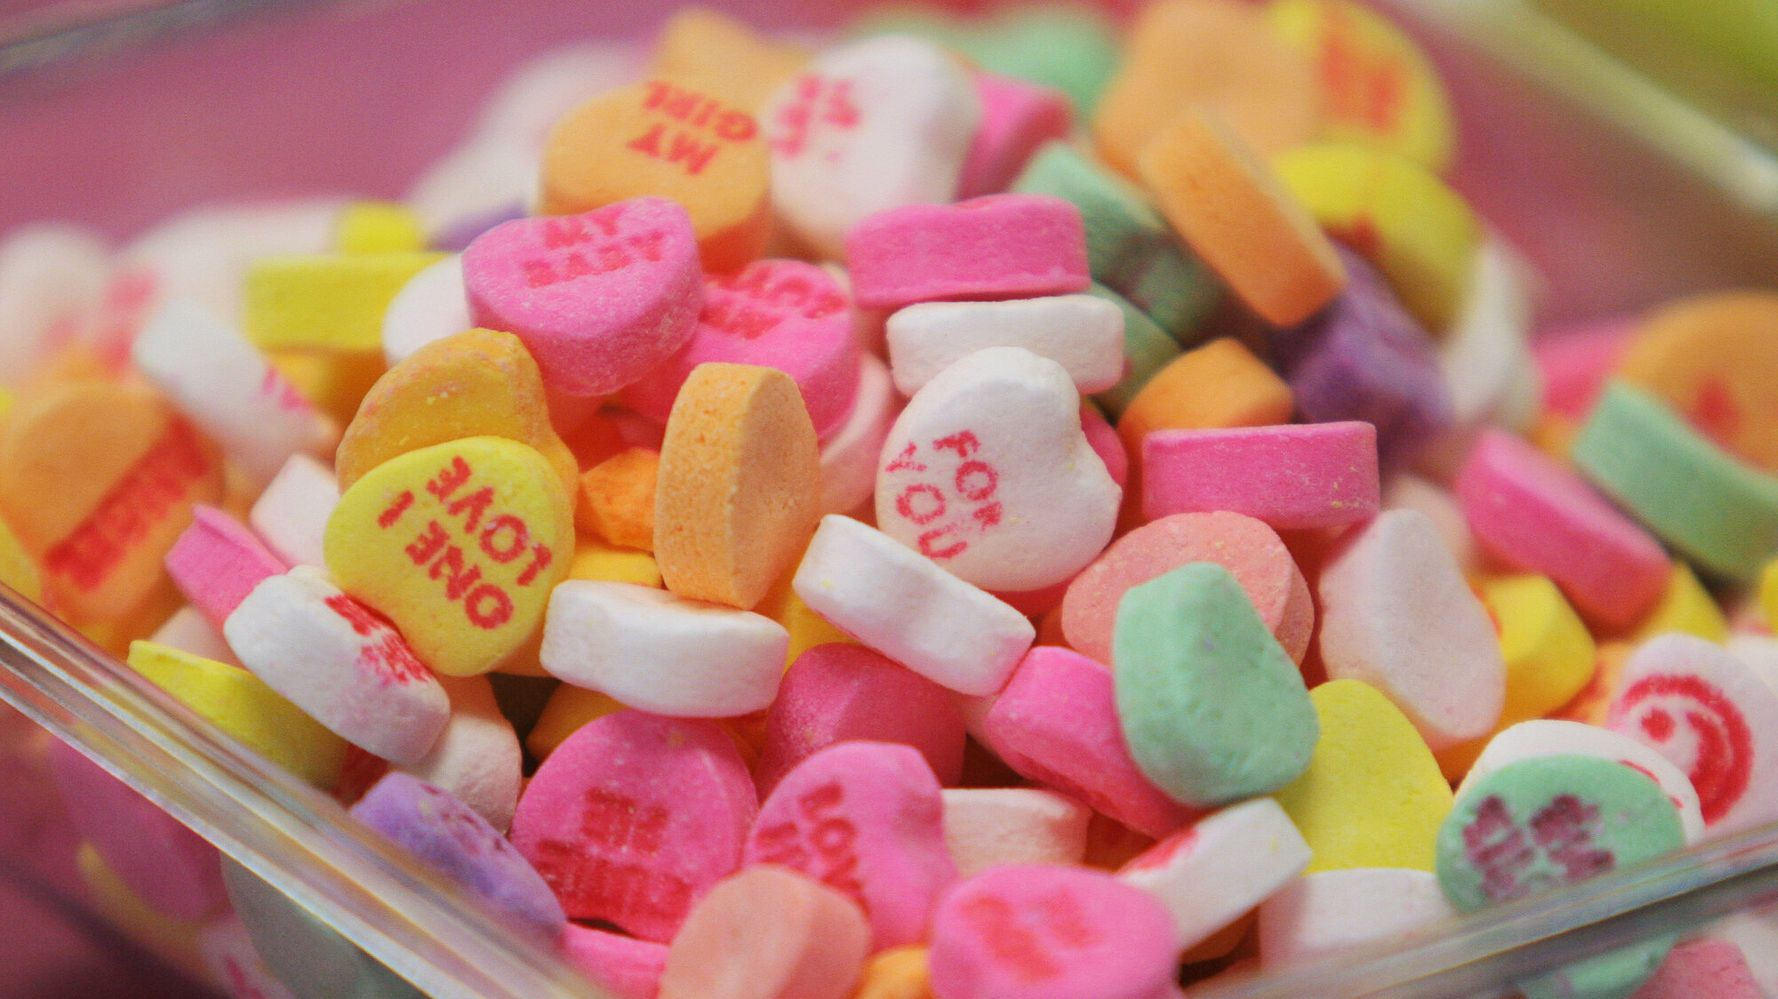 Sweethearts Candies Are Back This Year, But They're Missing One Major Detail photo